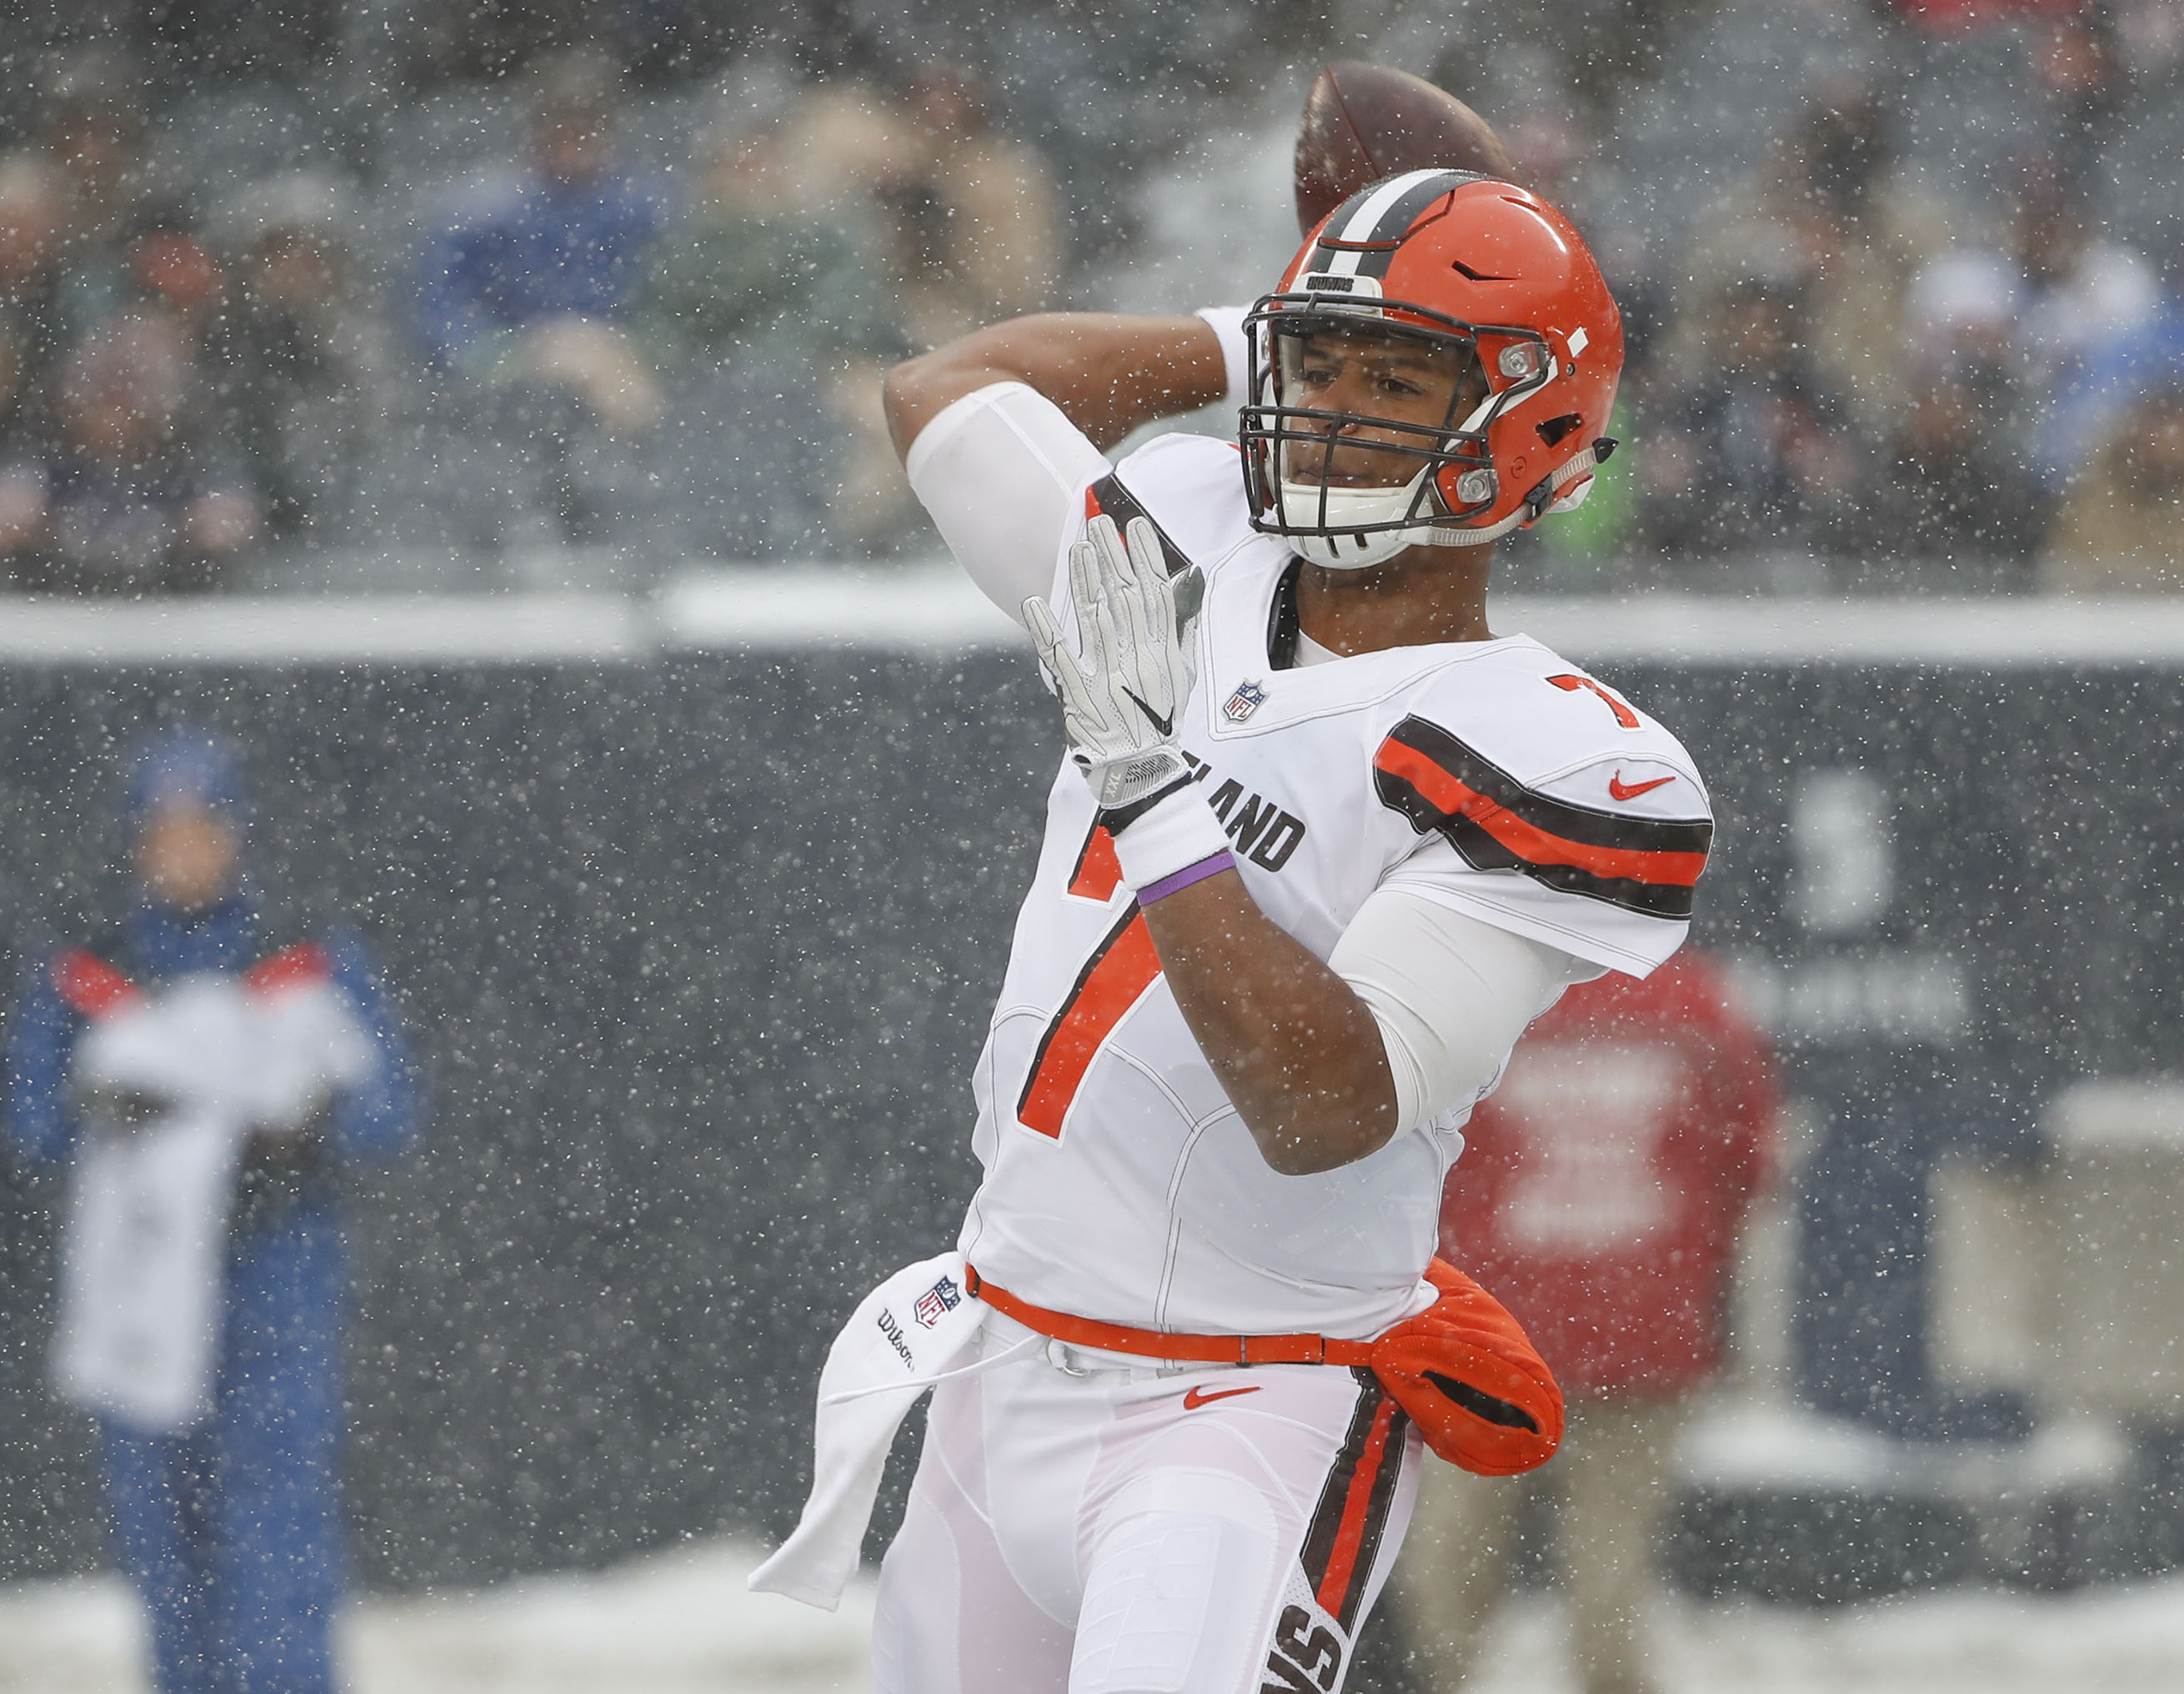 Browns go 0-16, joining 2008 Lions in historic National Football League low